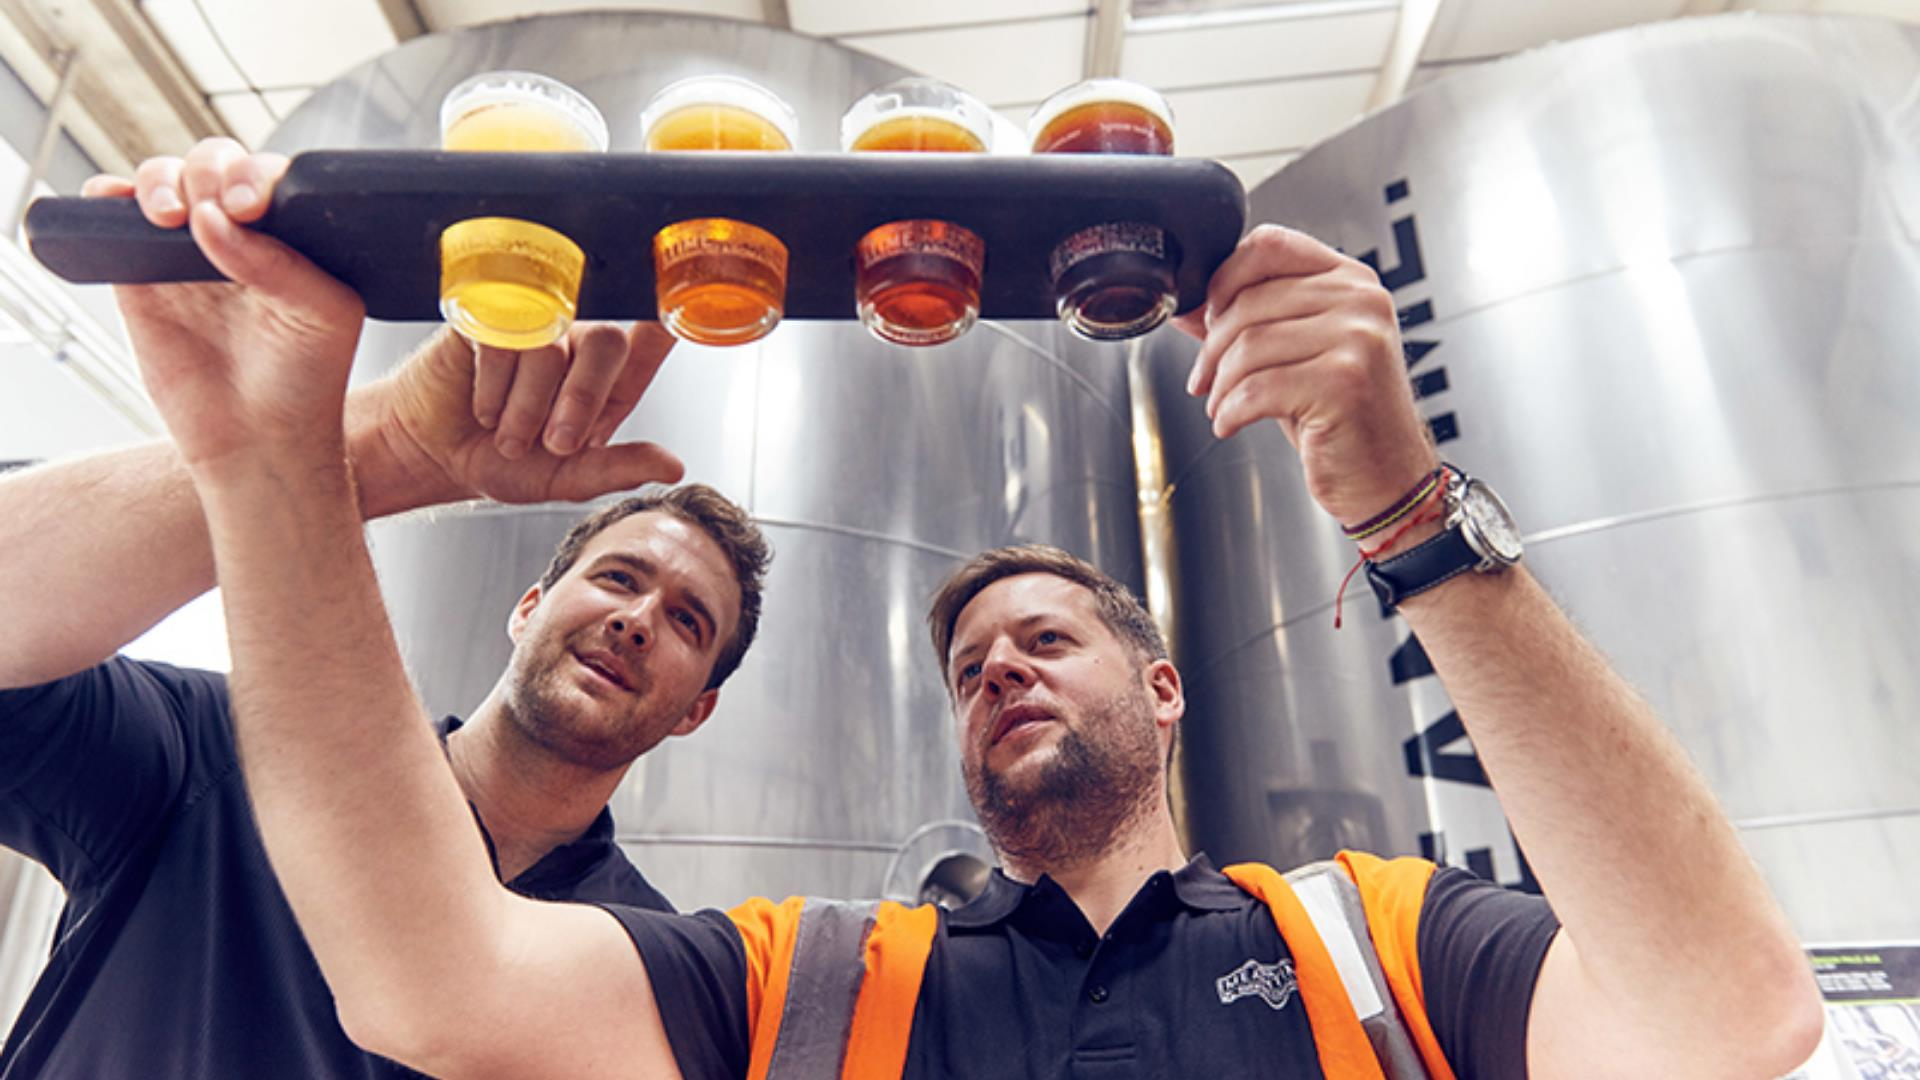 Brewers check the latest batch of brews at Meantime Brewery on Greenwich Peninsula.